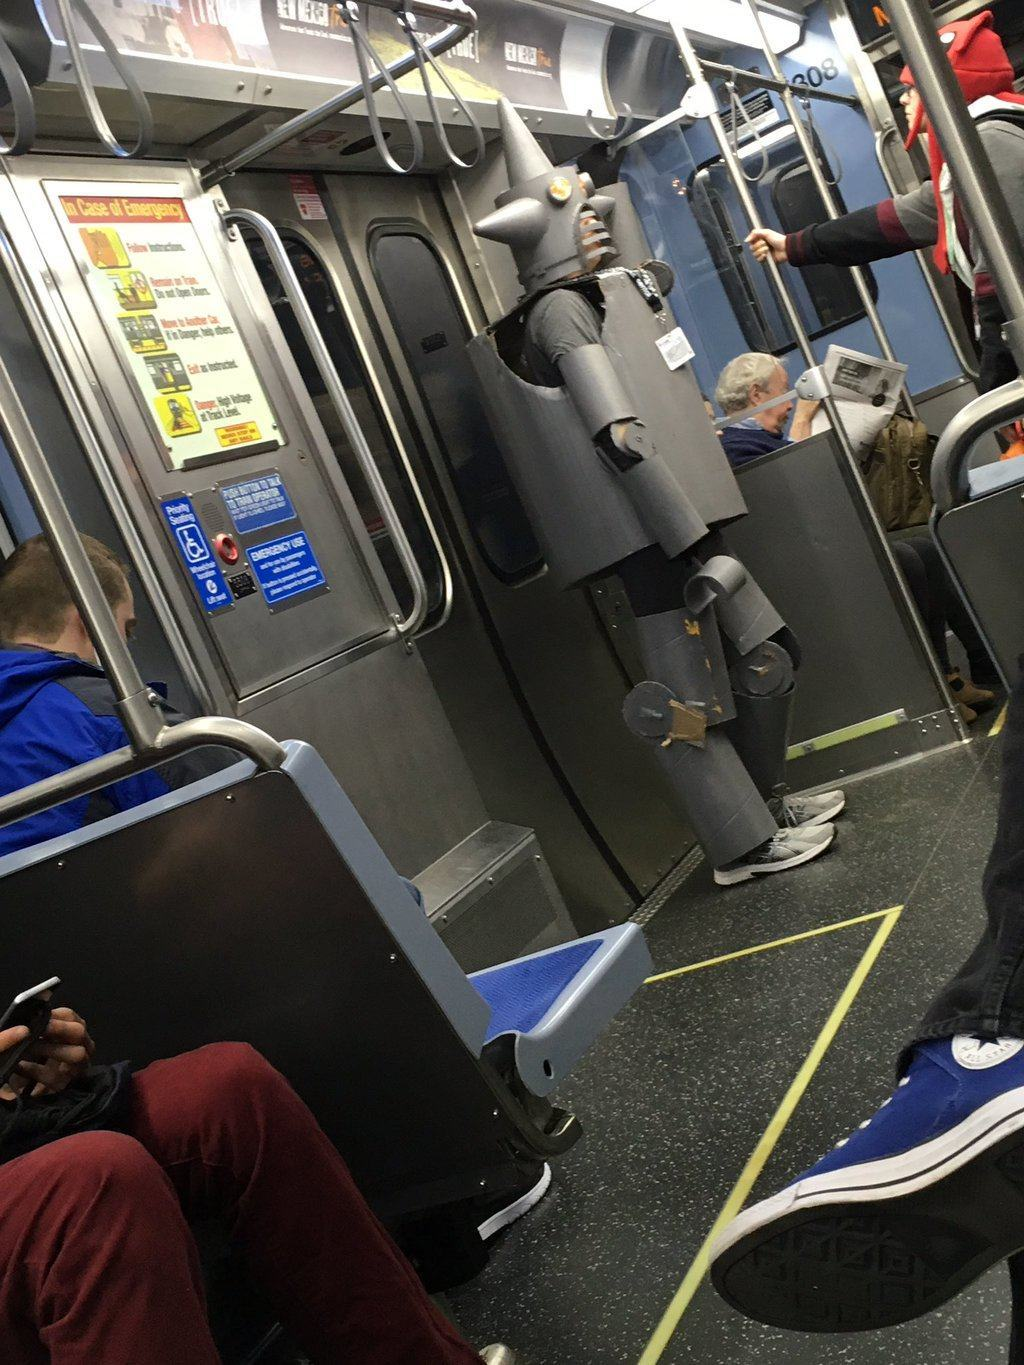 Meanwhile on the Red Line…